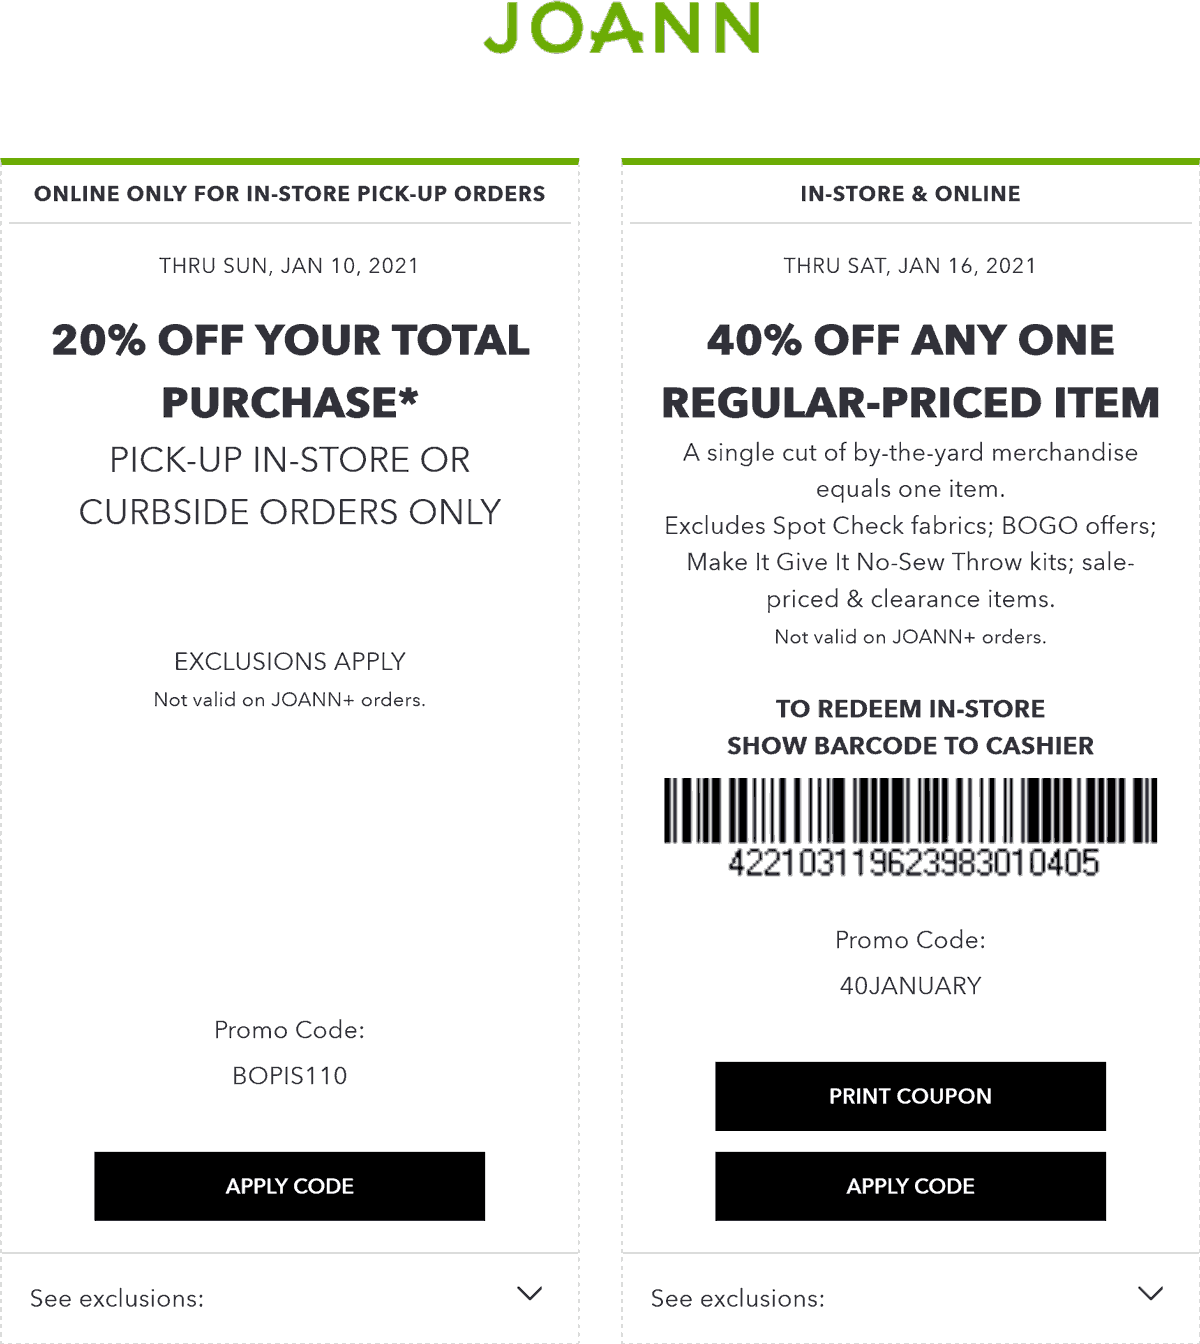 Joann stores Coupon  40% off a single item at Joann, or online via promo code 40JANUARY #joann